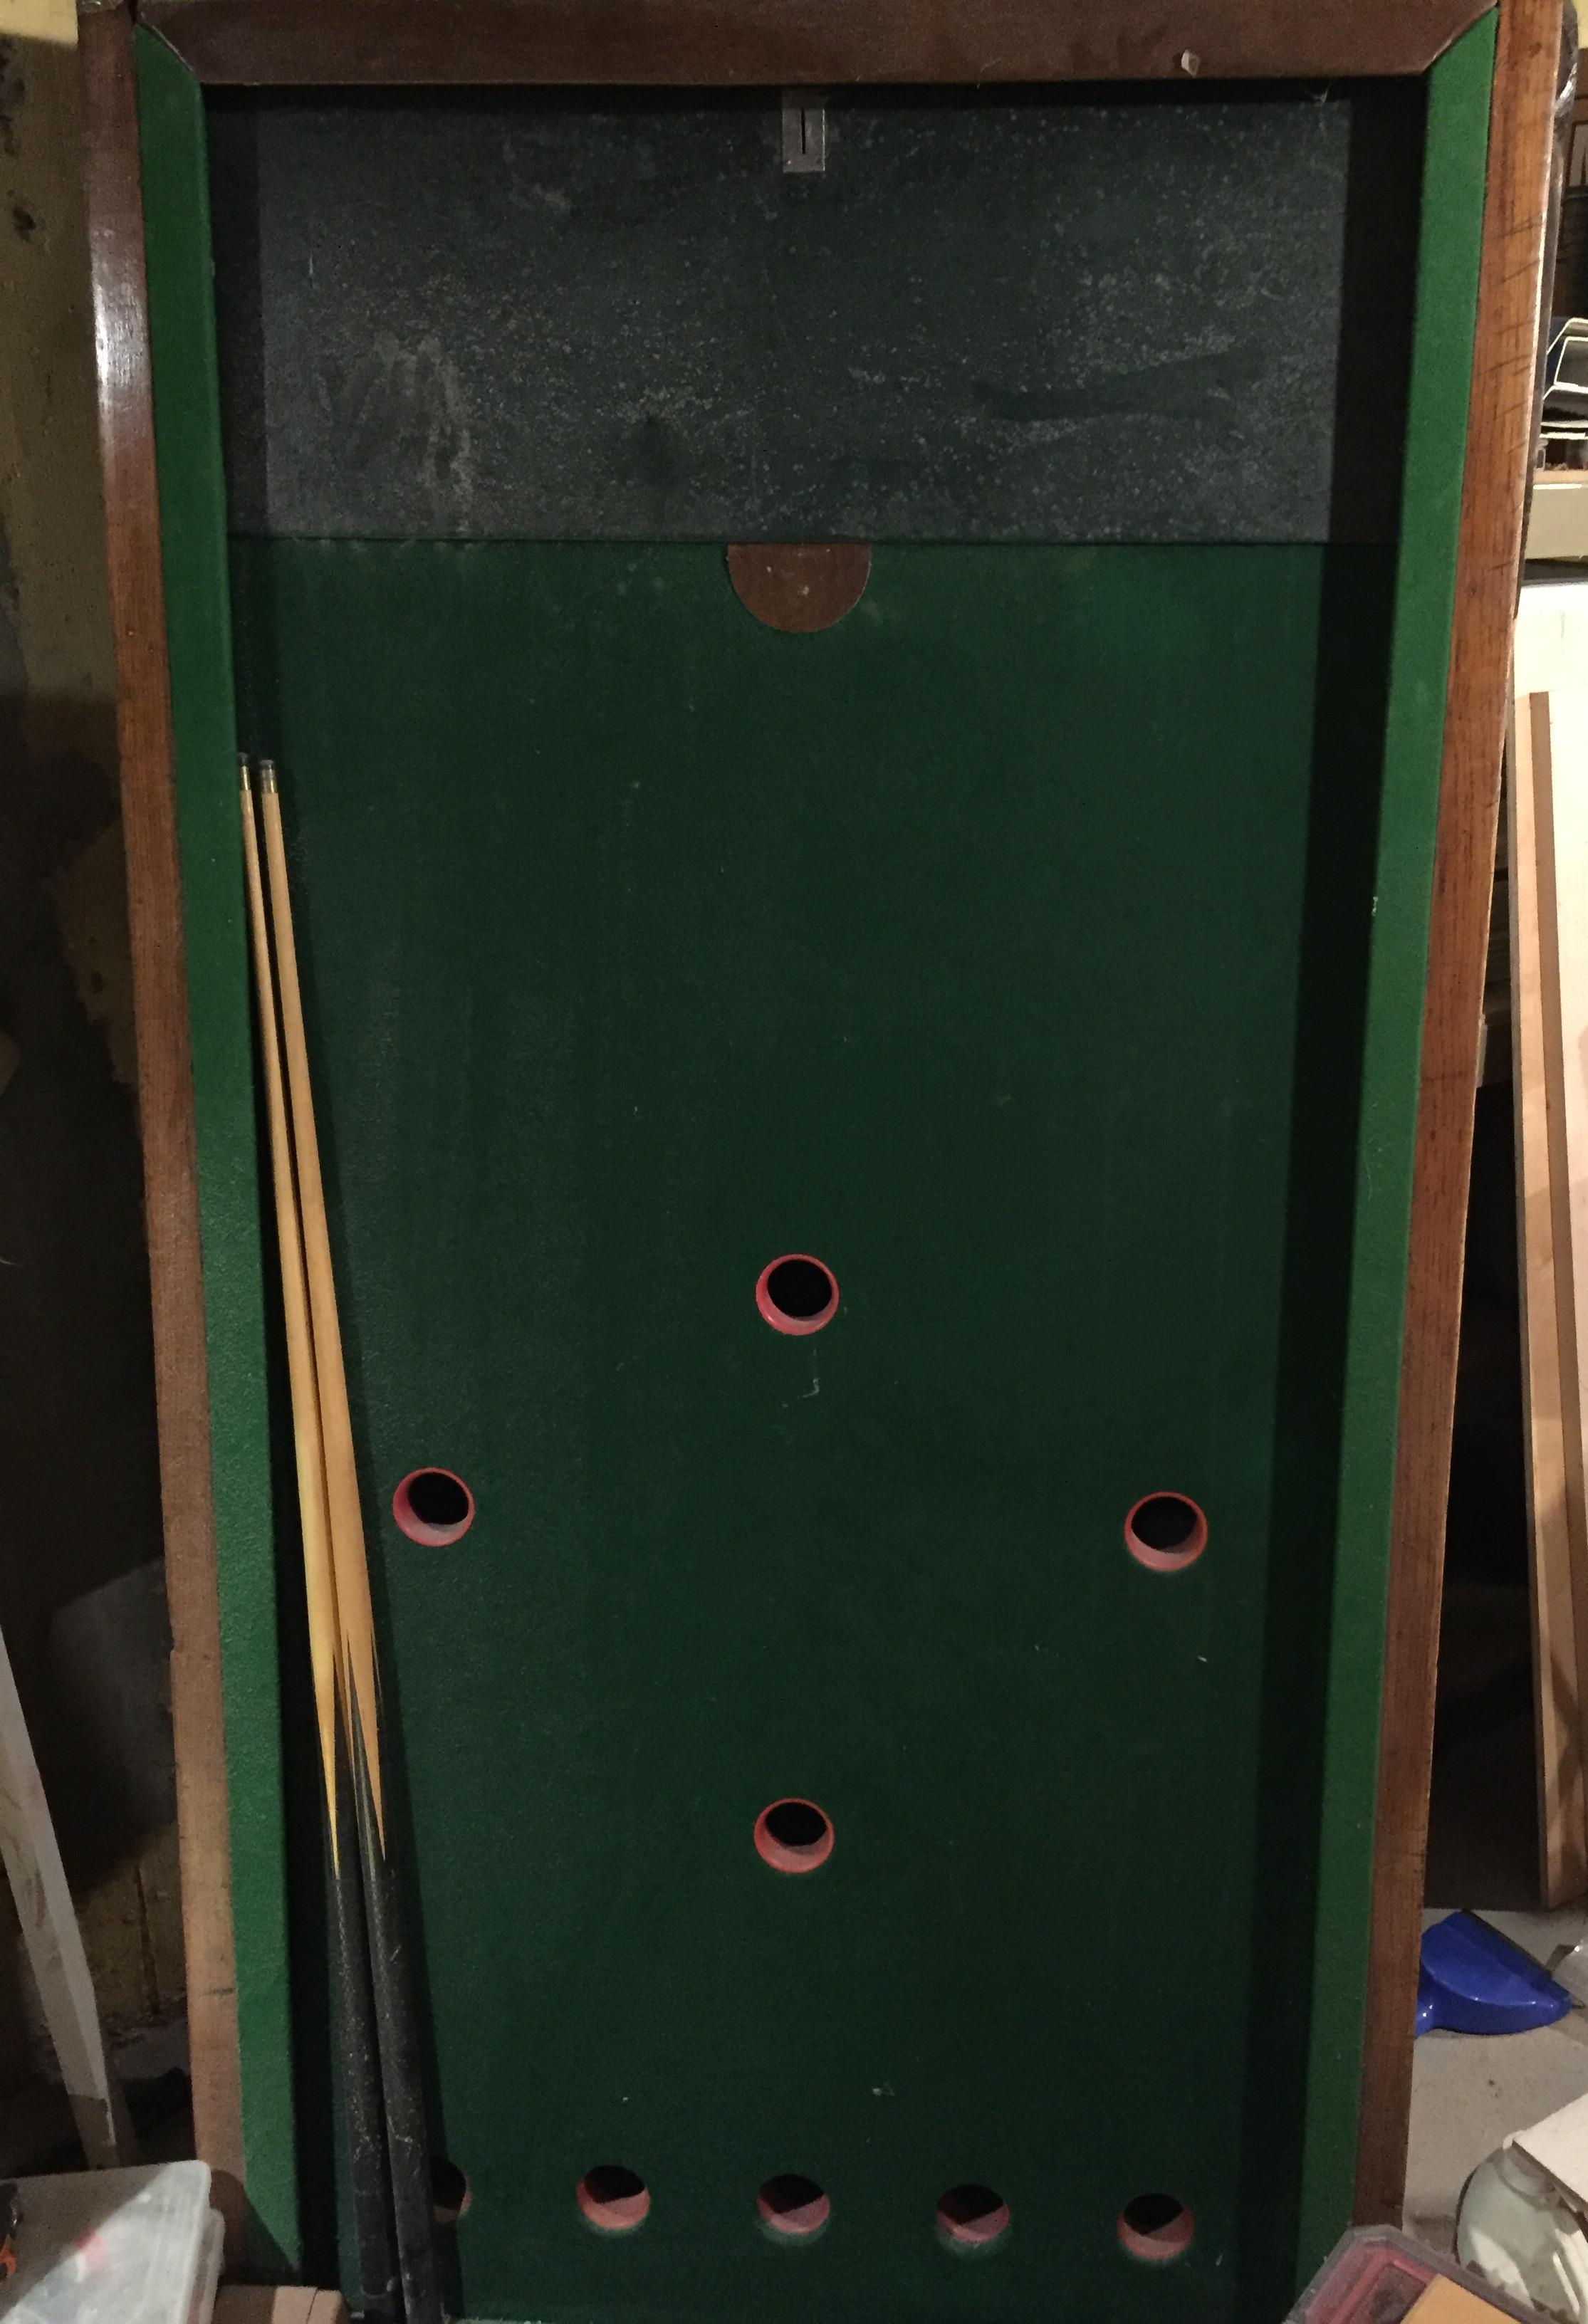 Looking For A Bar Billiards Table In USA - Bar billiards table for sale usa